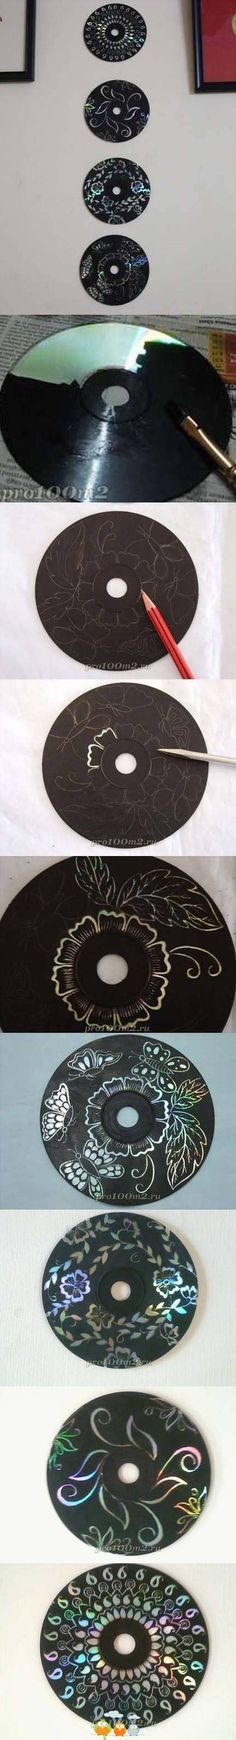 CD Scratch art...as mandala?